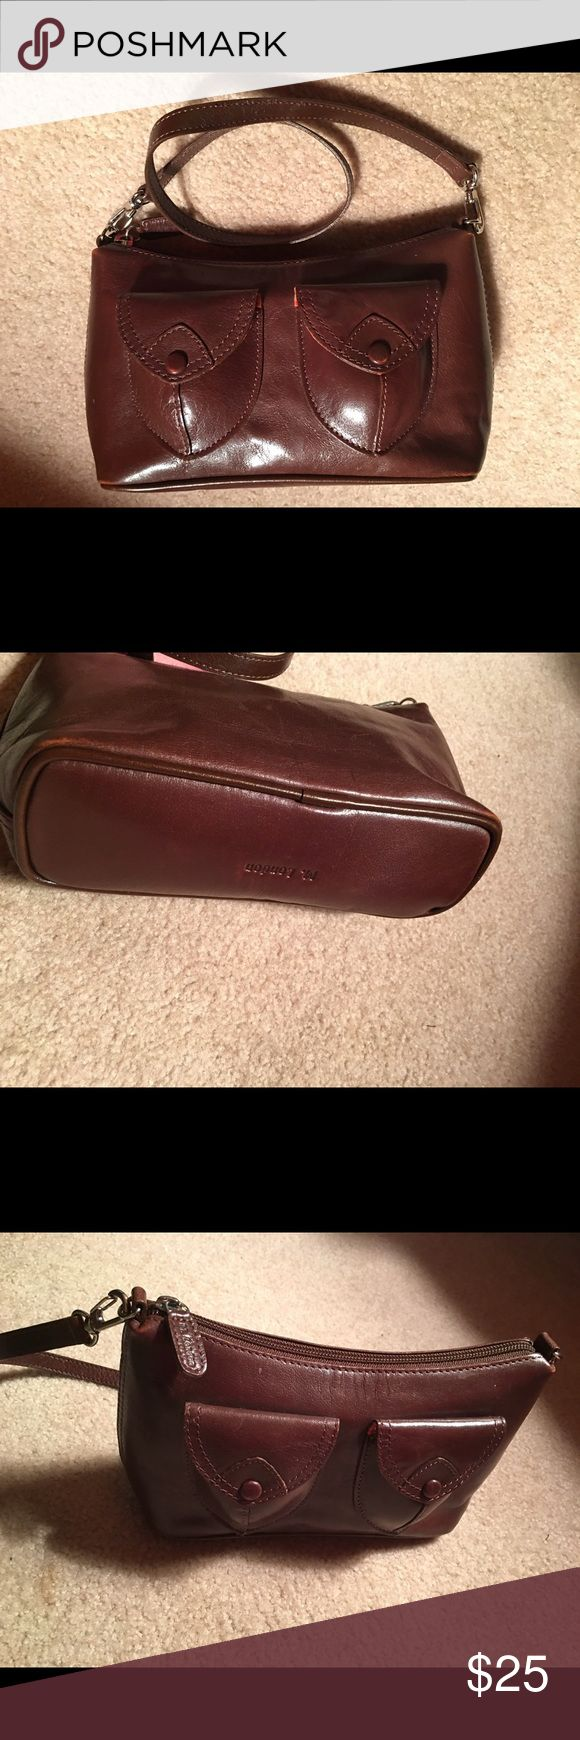 M. London Brown Leather Small Shoulder Handbag Great Condition. Measures about 9 inches across. Soft Leather. Front Snap Pockets M. London Bags Shoulder Bags